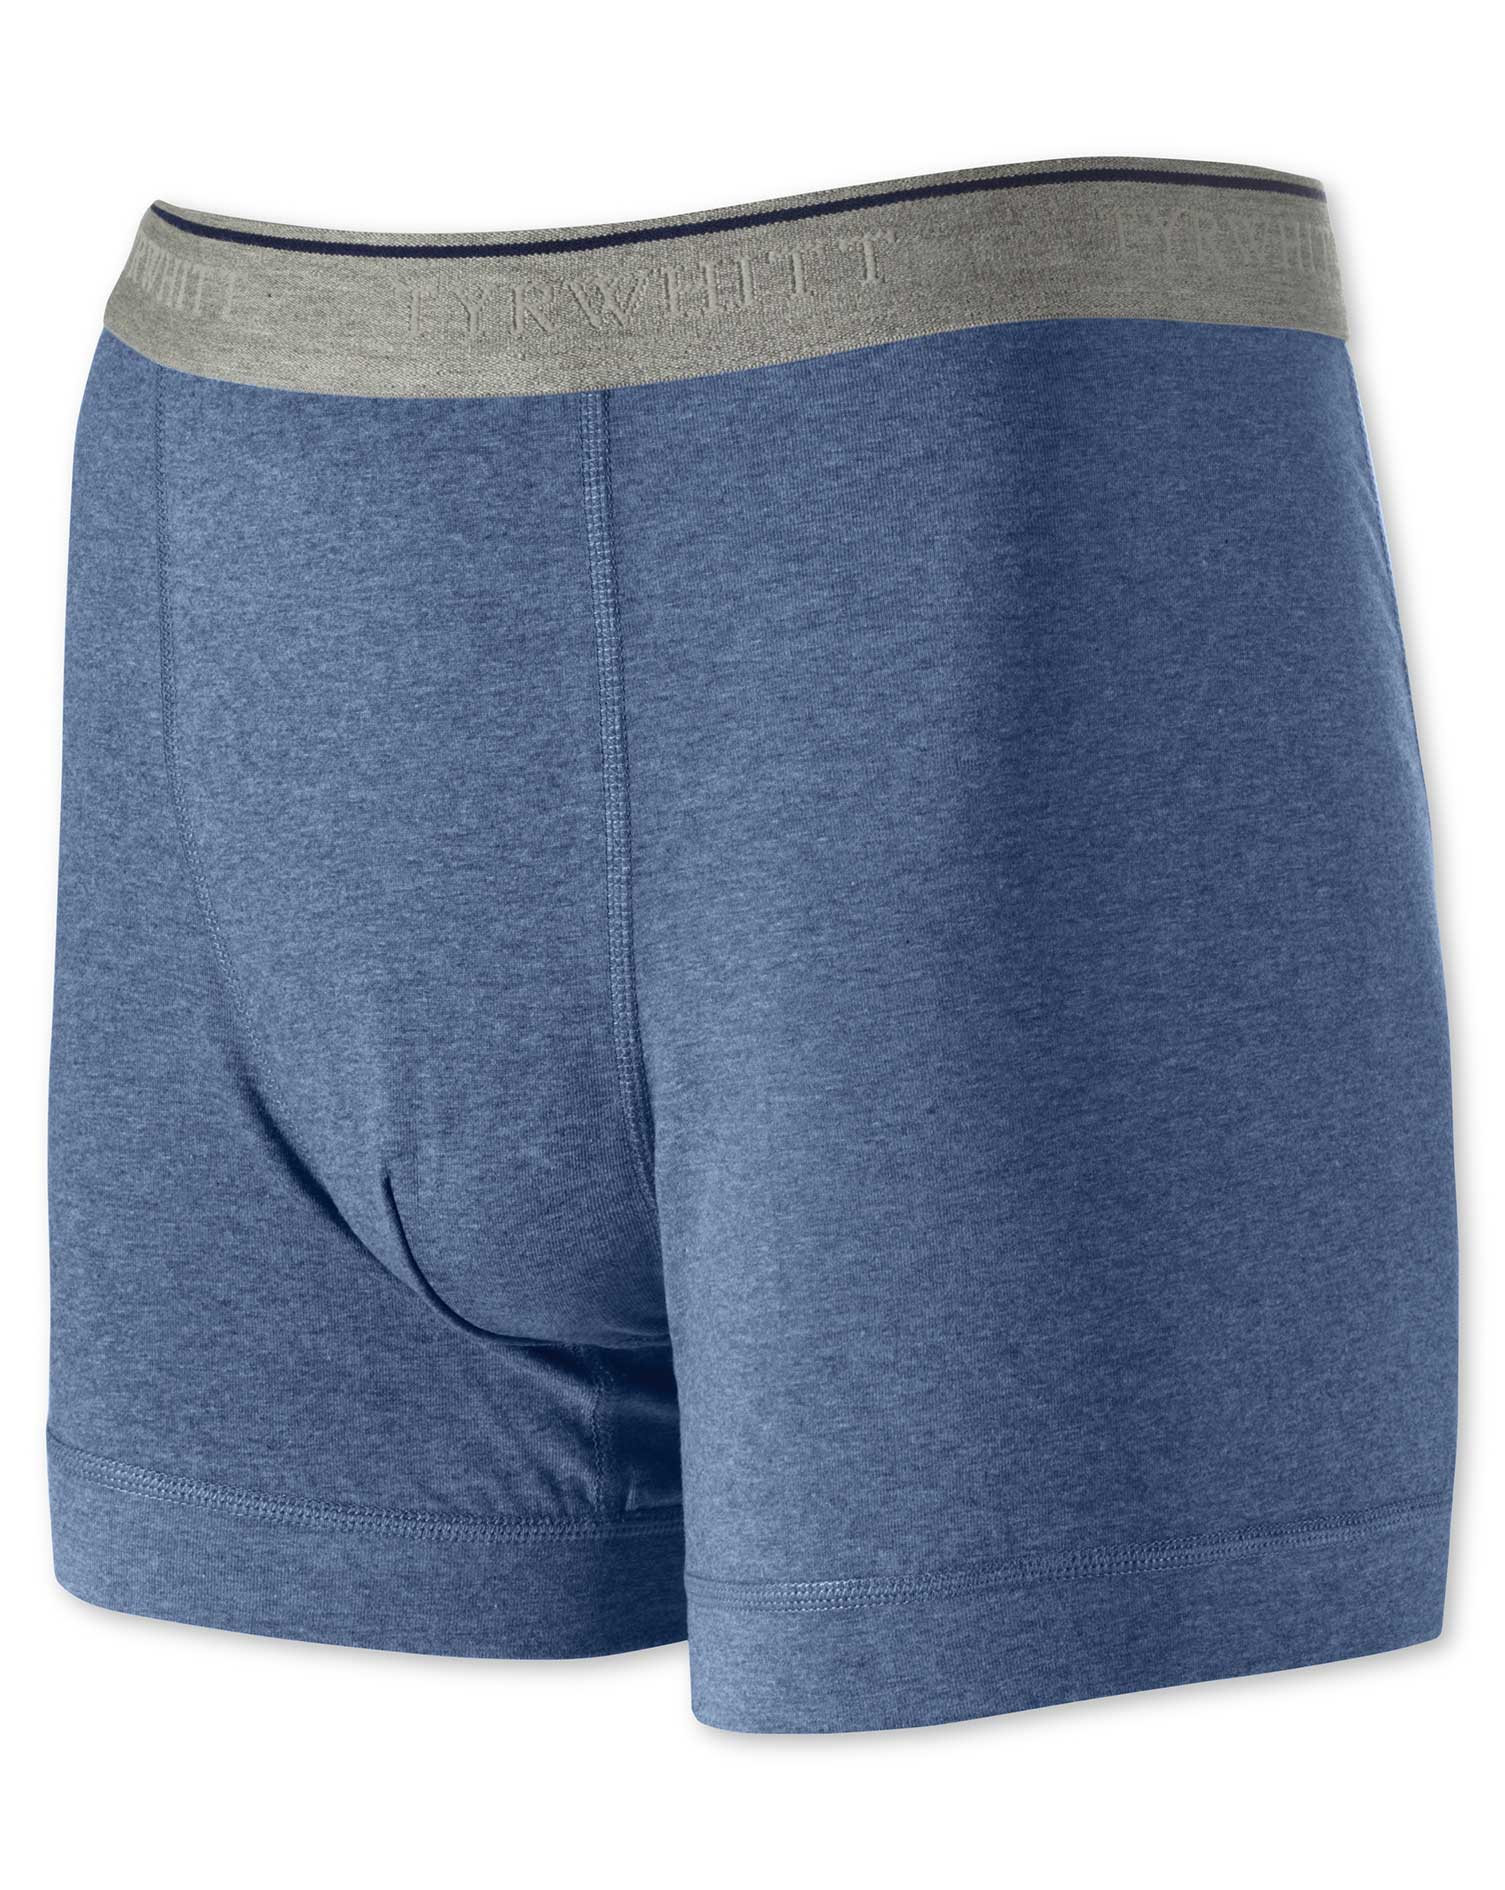 Blue Cotton Stretch Jersey Trunks Size Medium by Charles Tyrwhitt